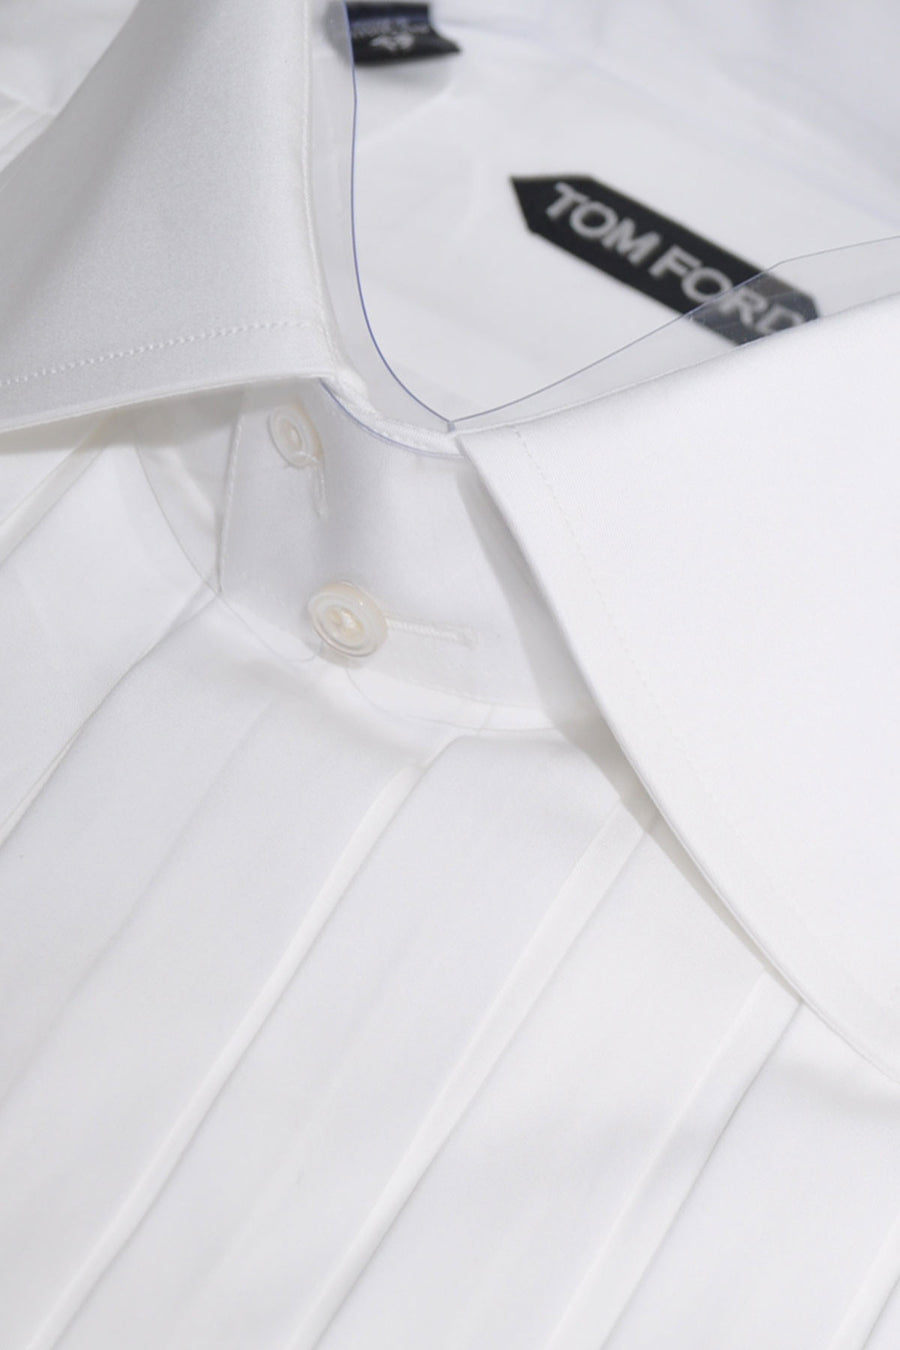 Tom Ford Tuxedo Shirt White Plisse Plastron High Stand Collar